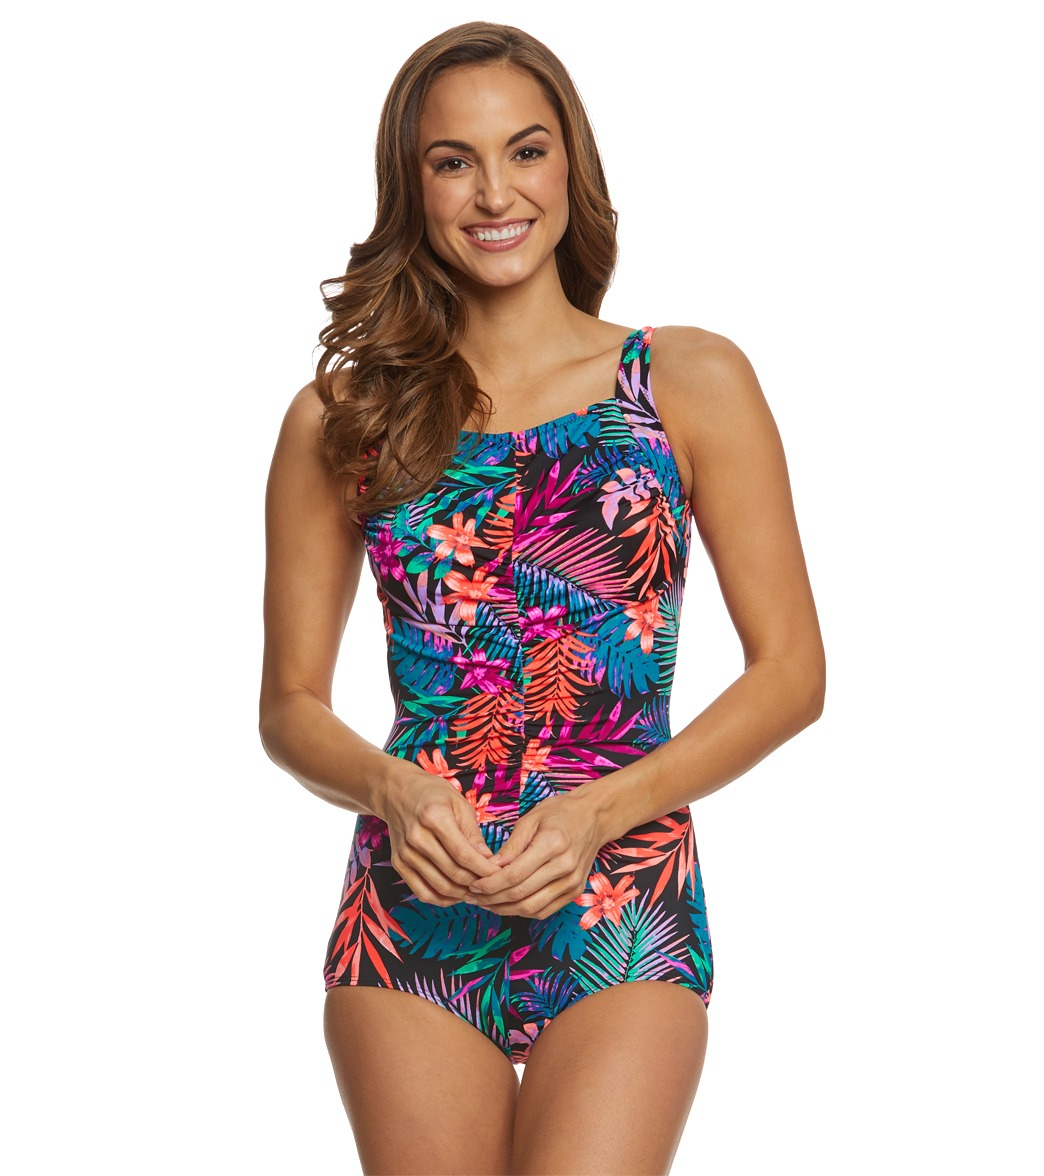 ffdc0a280d0 ... T.H.E. Mastectomy Tropicana Shirred Front Girl Leg One Piece Swimsuit  Play Video. Play Video